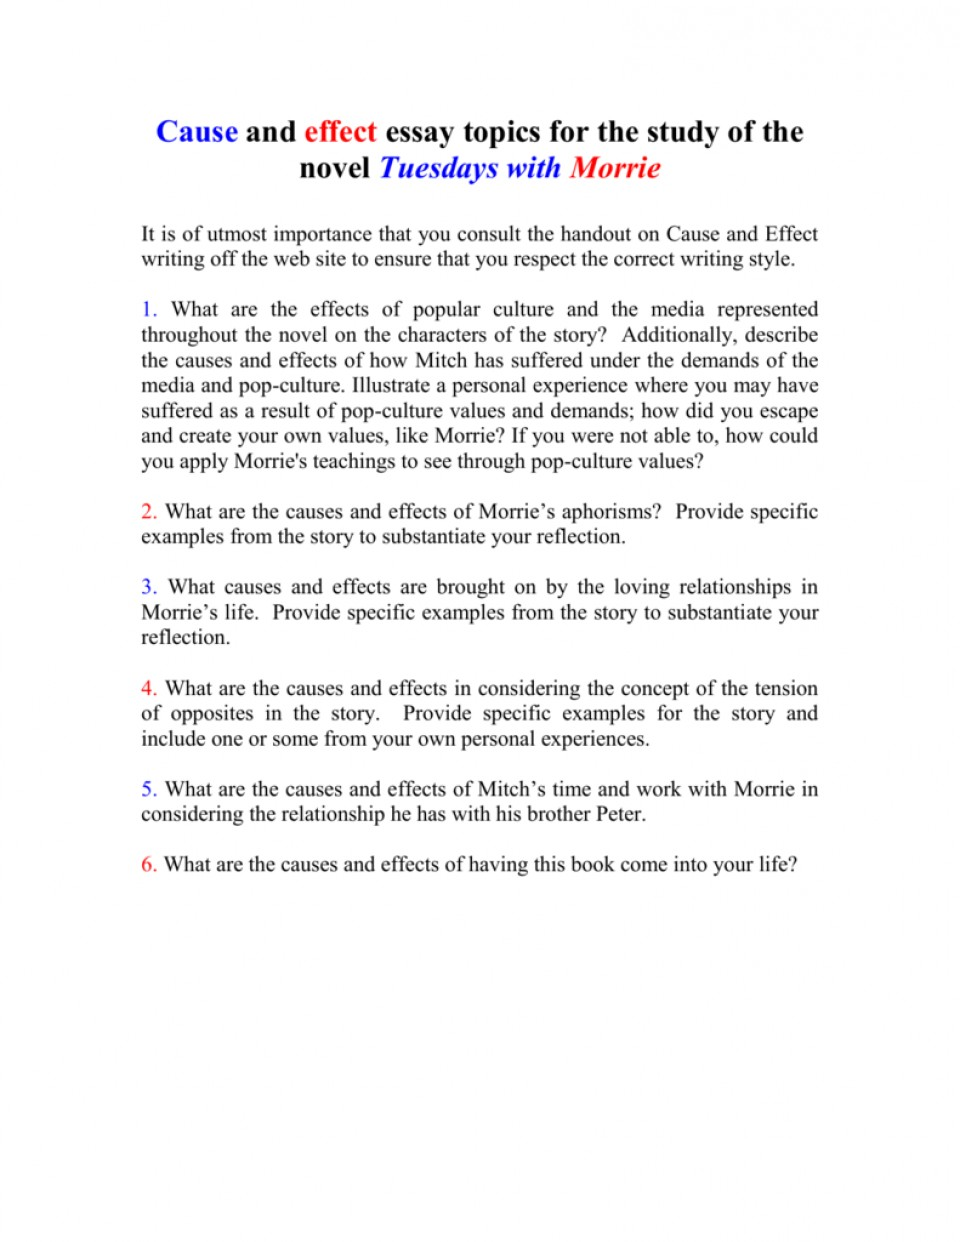 013 Essay Example On Tuesdays With Morrie 008010712 1 Unusual Analytical Reflection Paper Argumentative 960